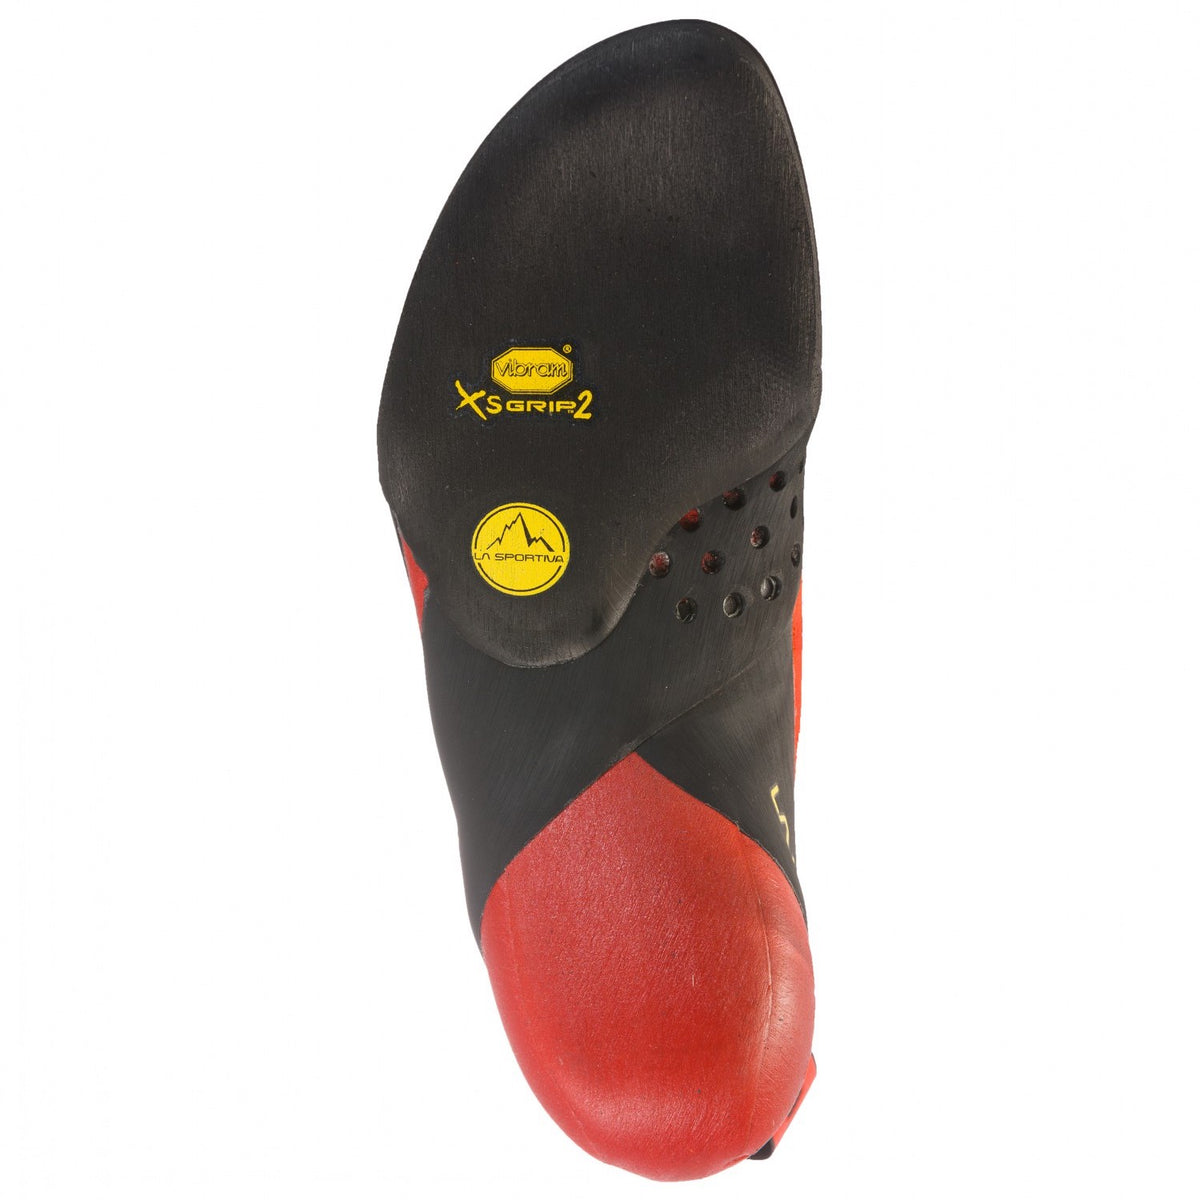 La Sportiva Testarossa climbing shoe, sole view in black and red colours